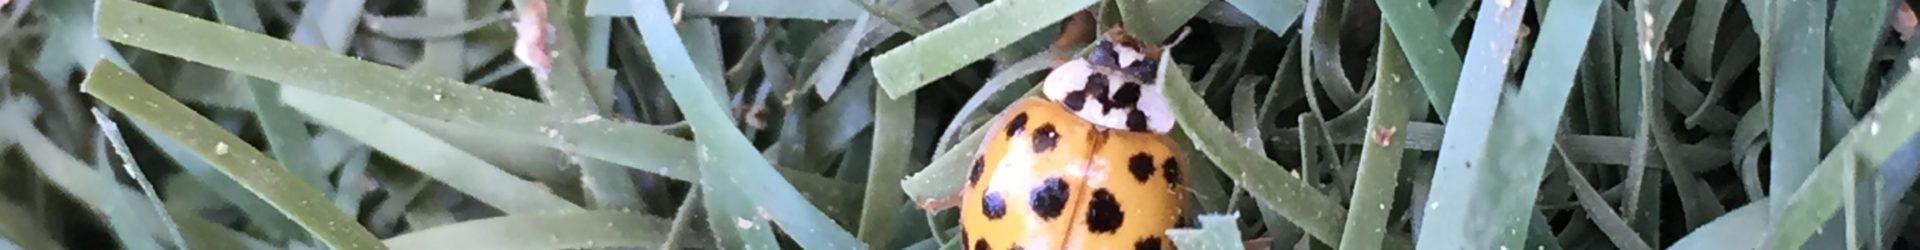 Ladybug's Favorite Hiking Spots in Phoenix for Kids